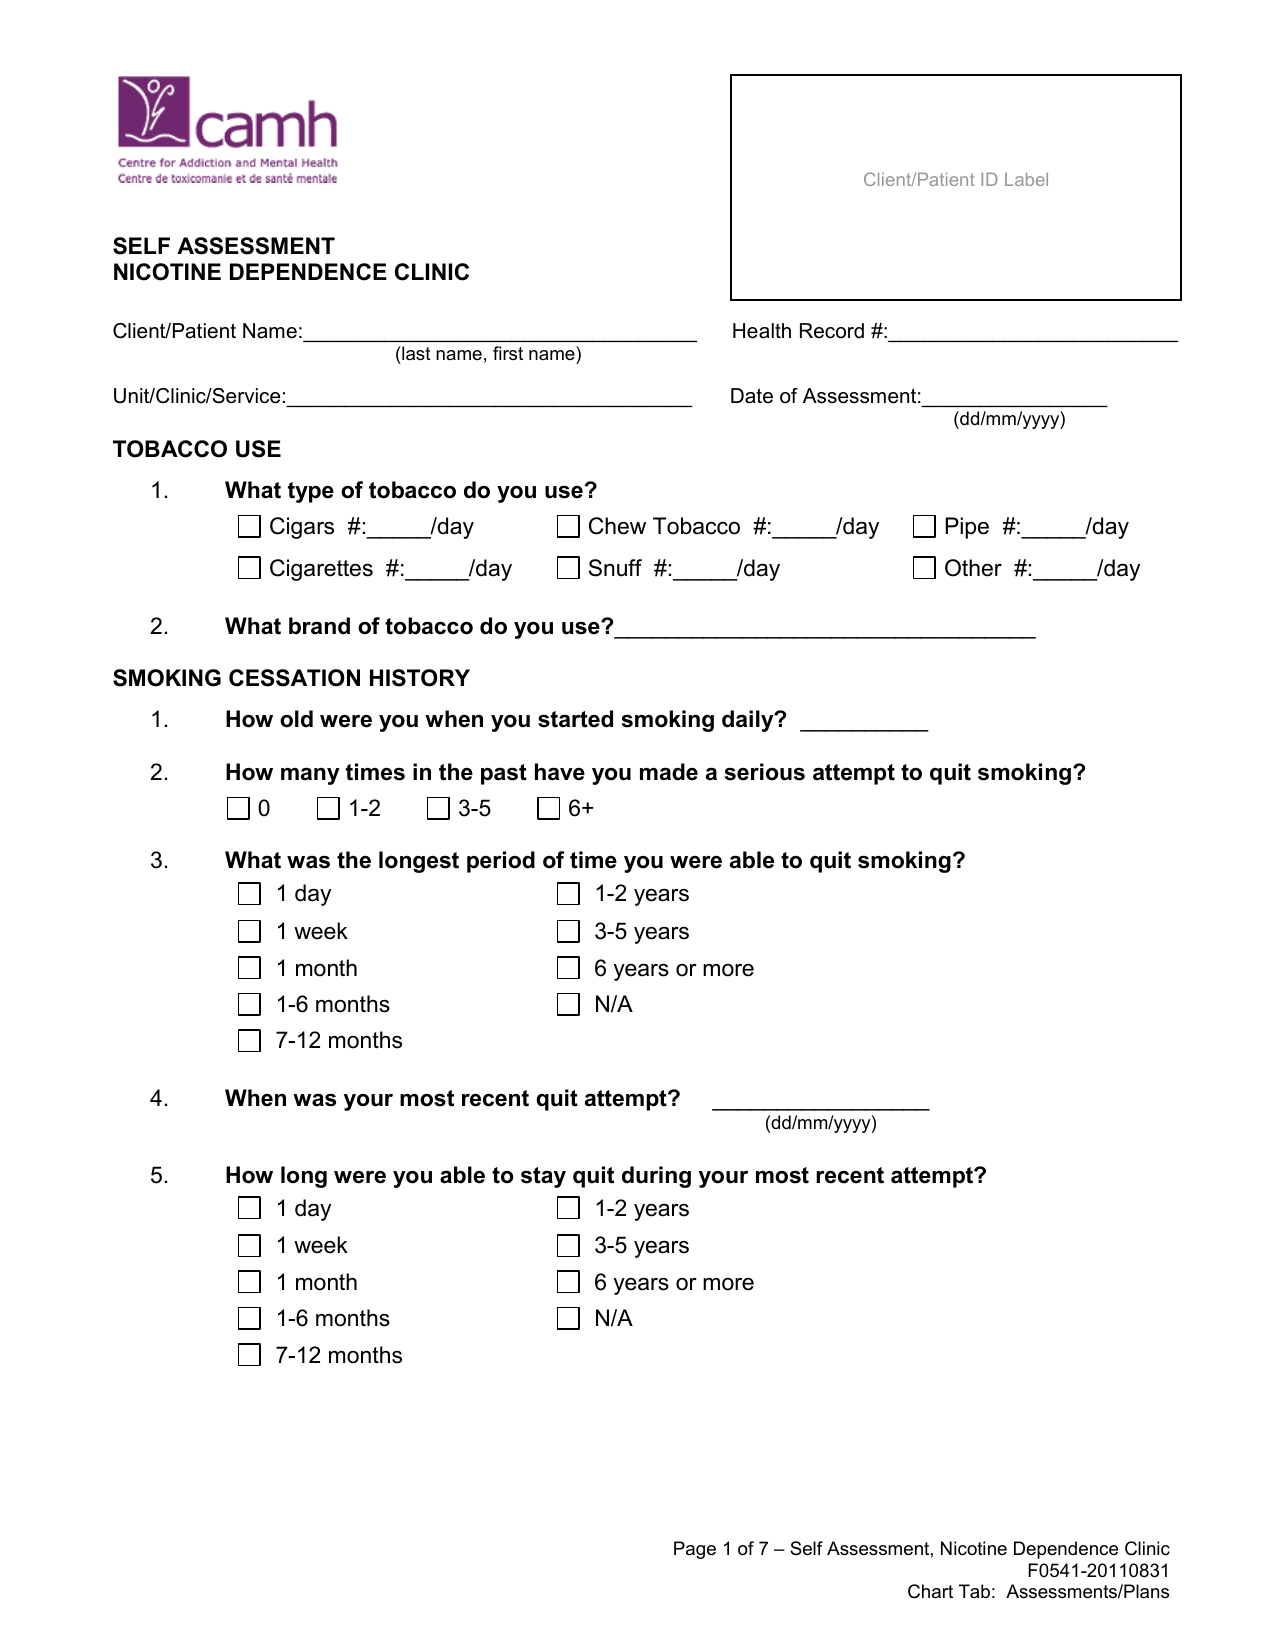 Assessment Form Nicotine Dependence Clinic